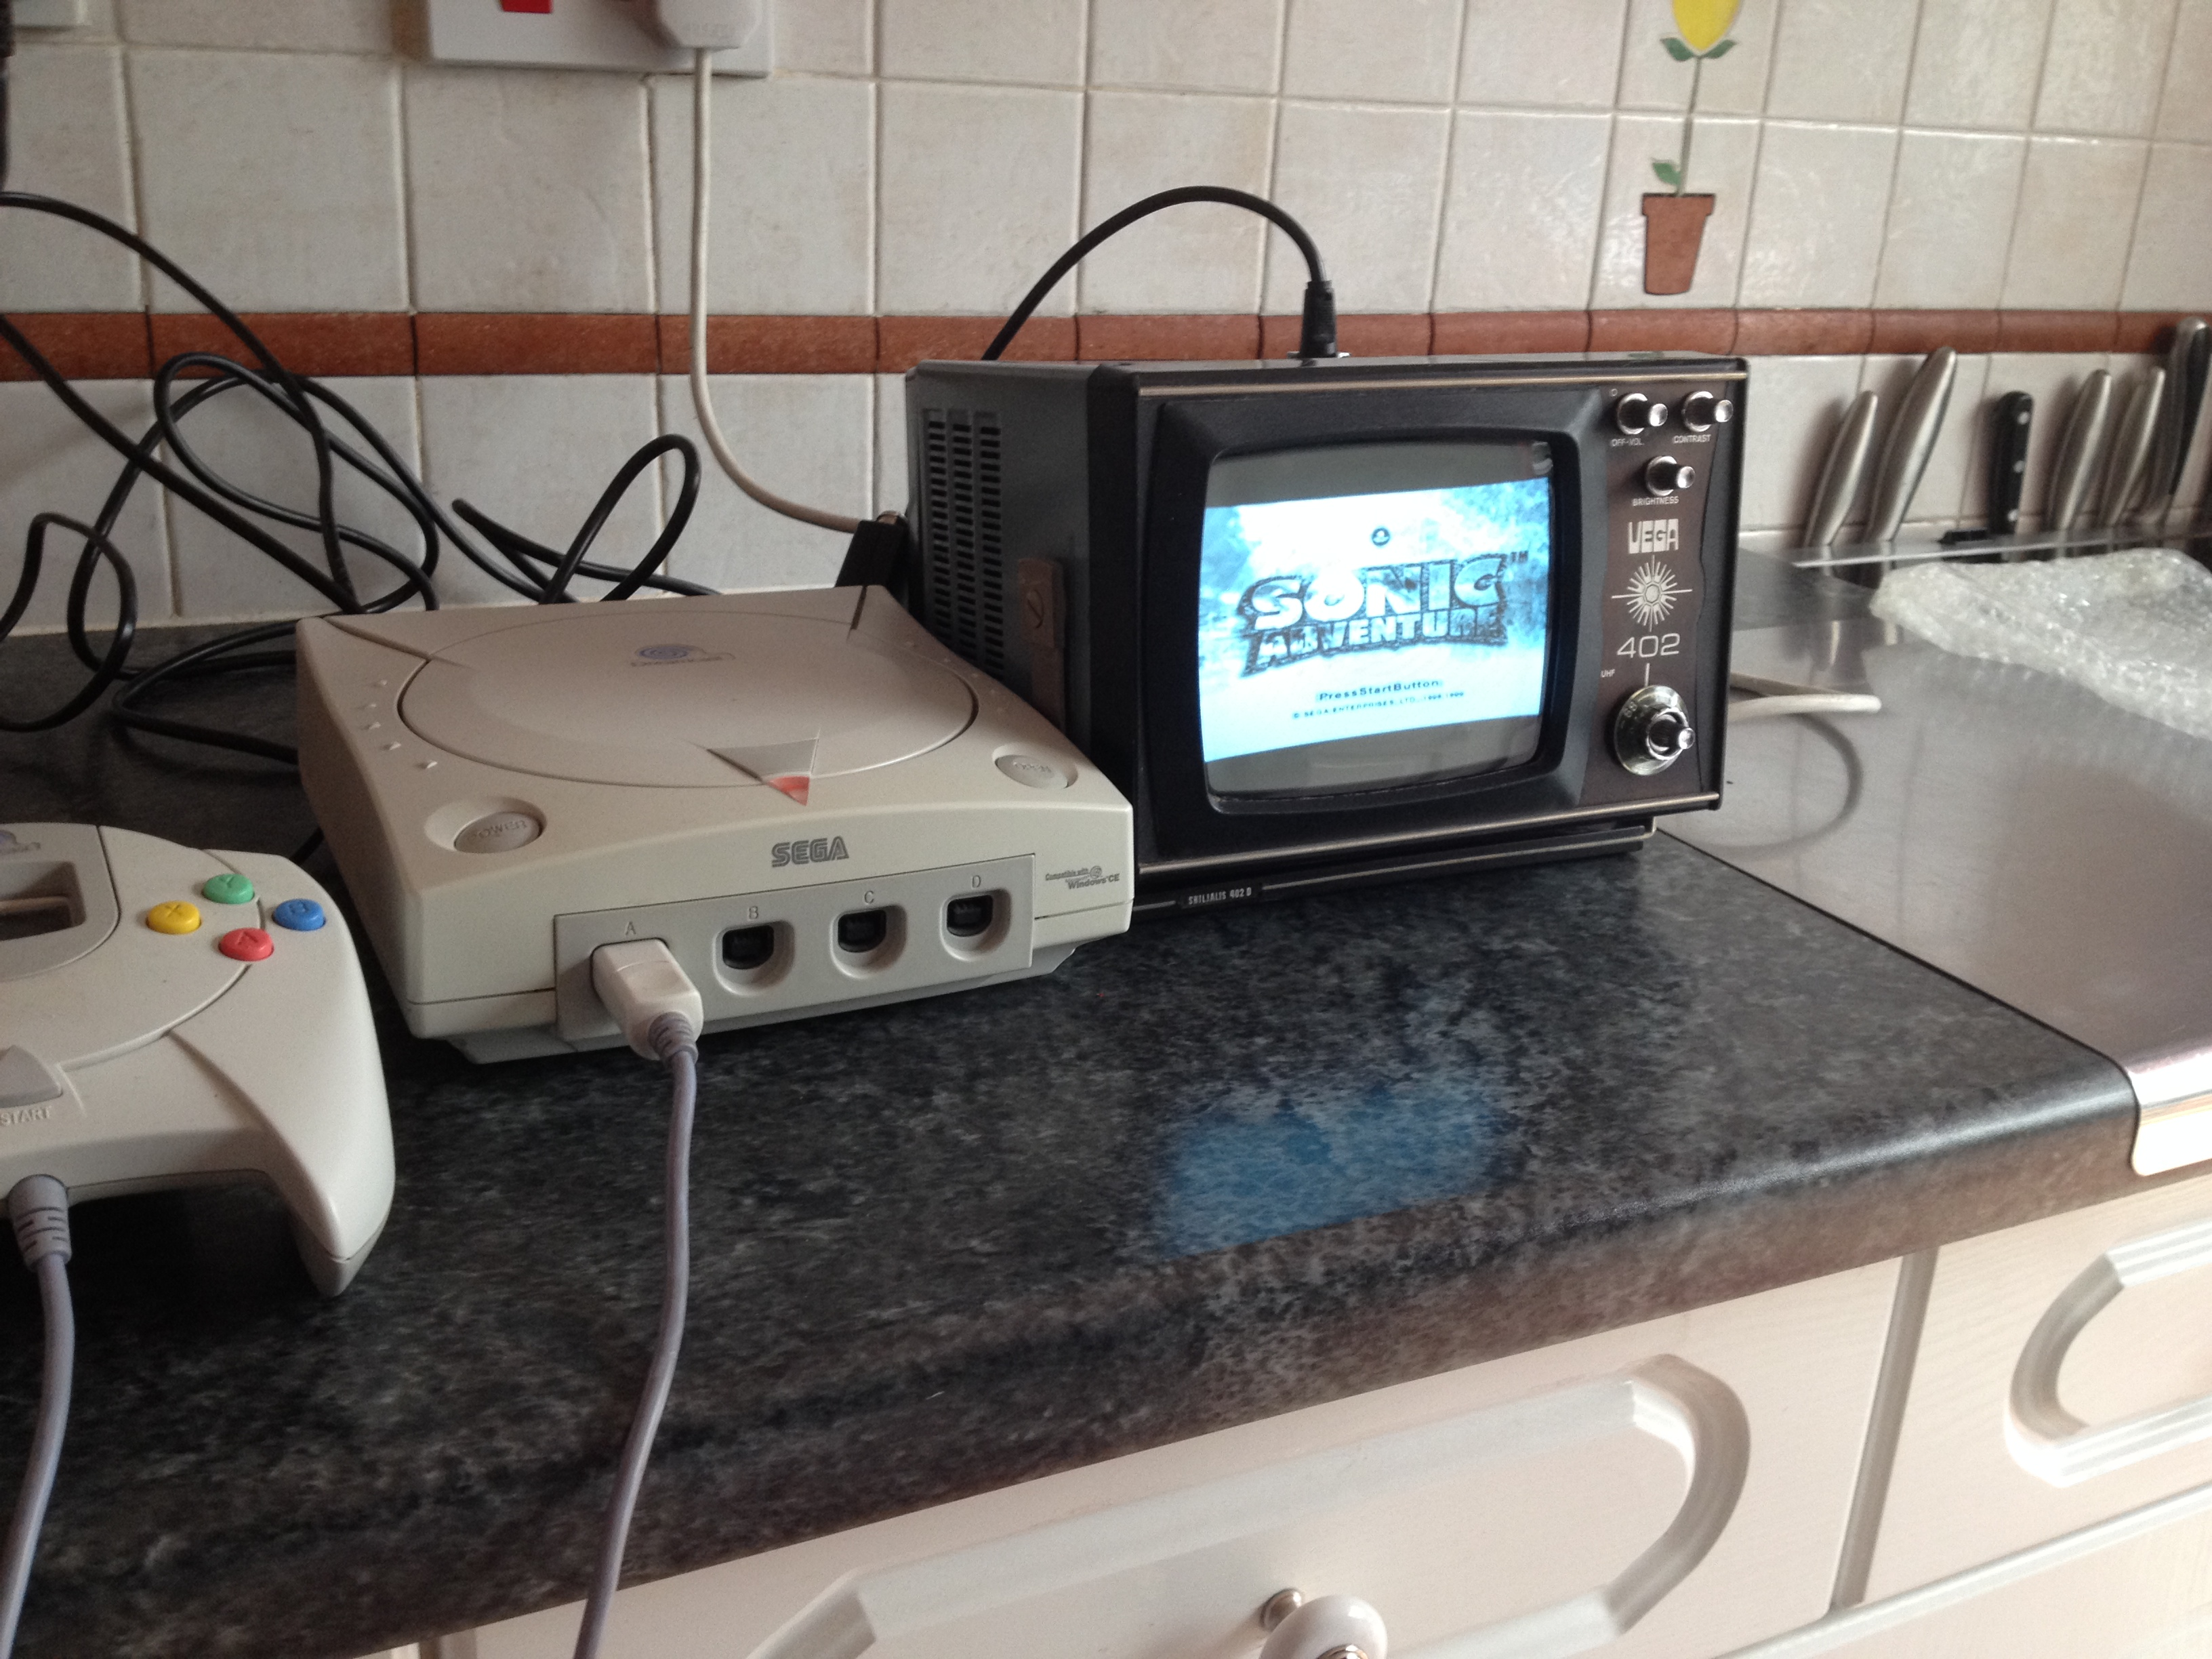 Pointlessly cool thing of the day: Sonic Adventure on a USSR 1970s Portable TV!